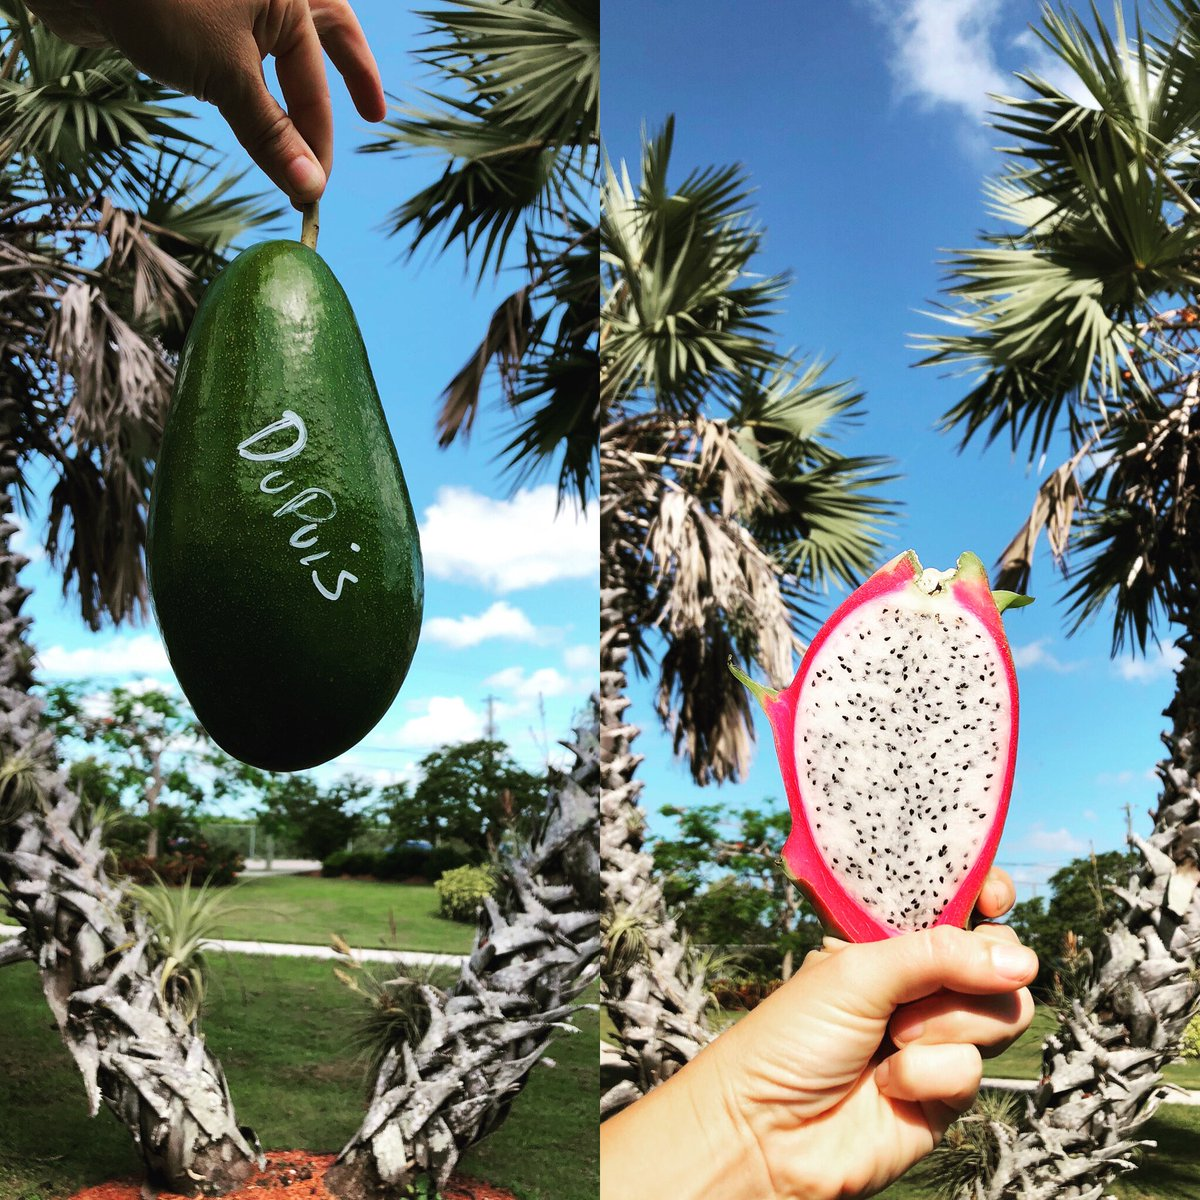 Two amazing tropical fruits we get to do research on 🤓👩🏼‍🌾 @UFTropical